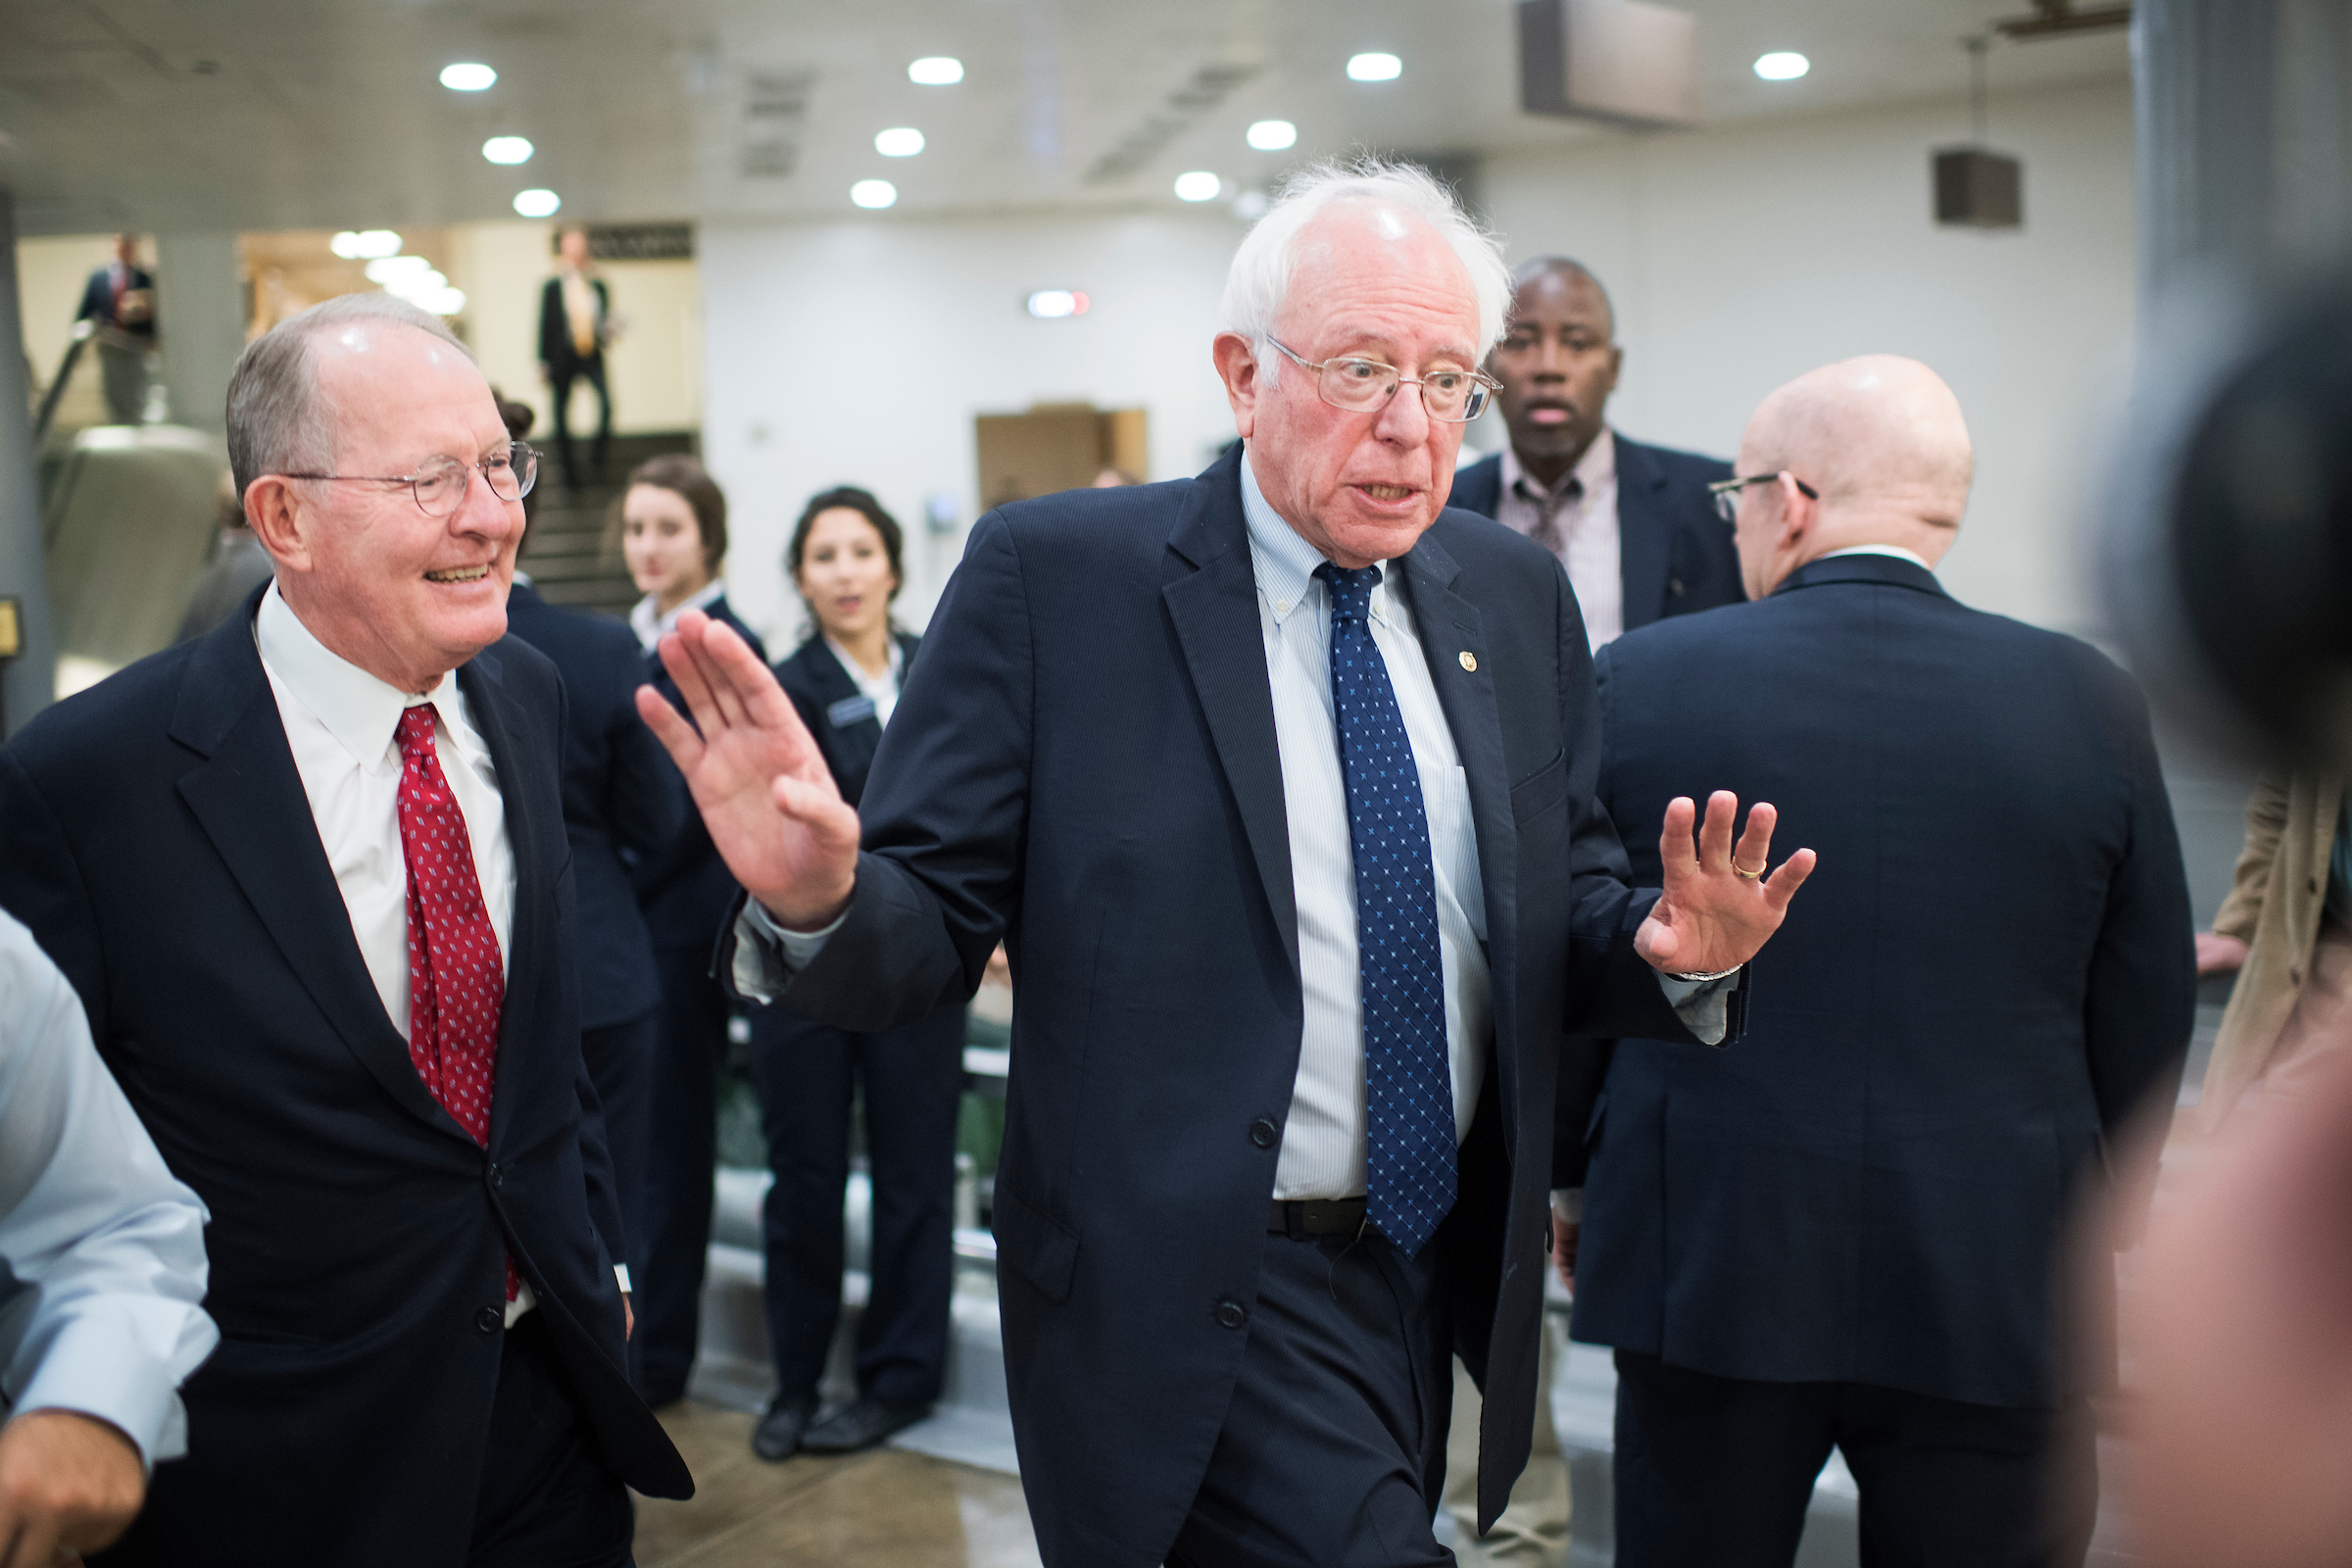 Sens. Bernie Sanders of Vermont, right, and Lamar Alexander of Tennessee decline to talk to a reporter in the Senate subway on Thursday, Sept. 15, 2016. (Tom Williams/CQ Roll Call)